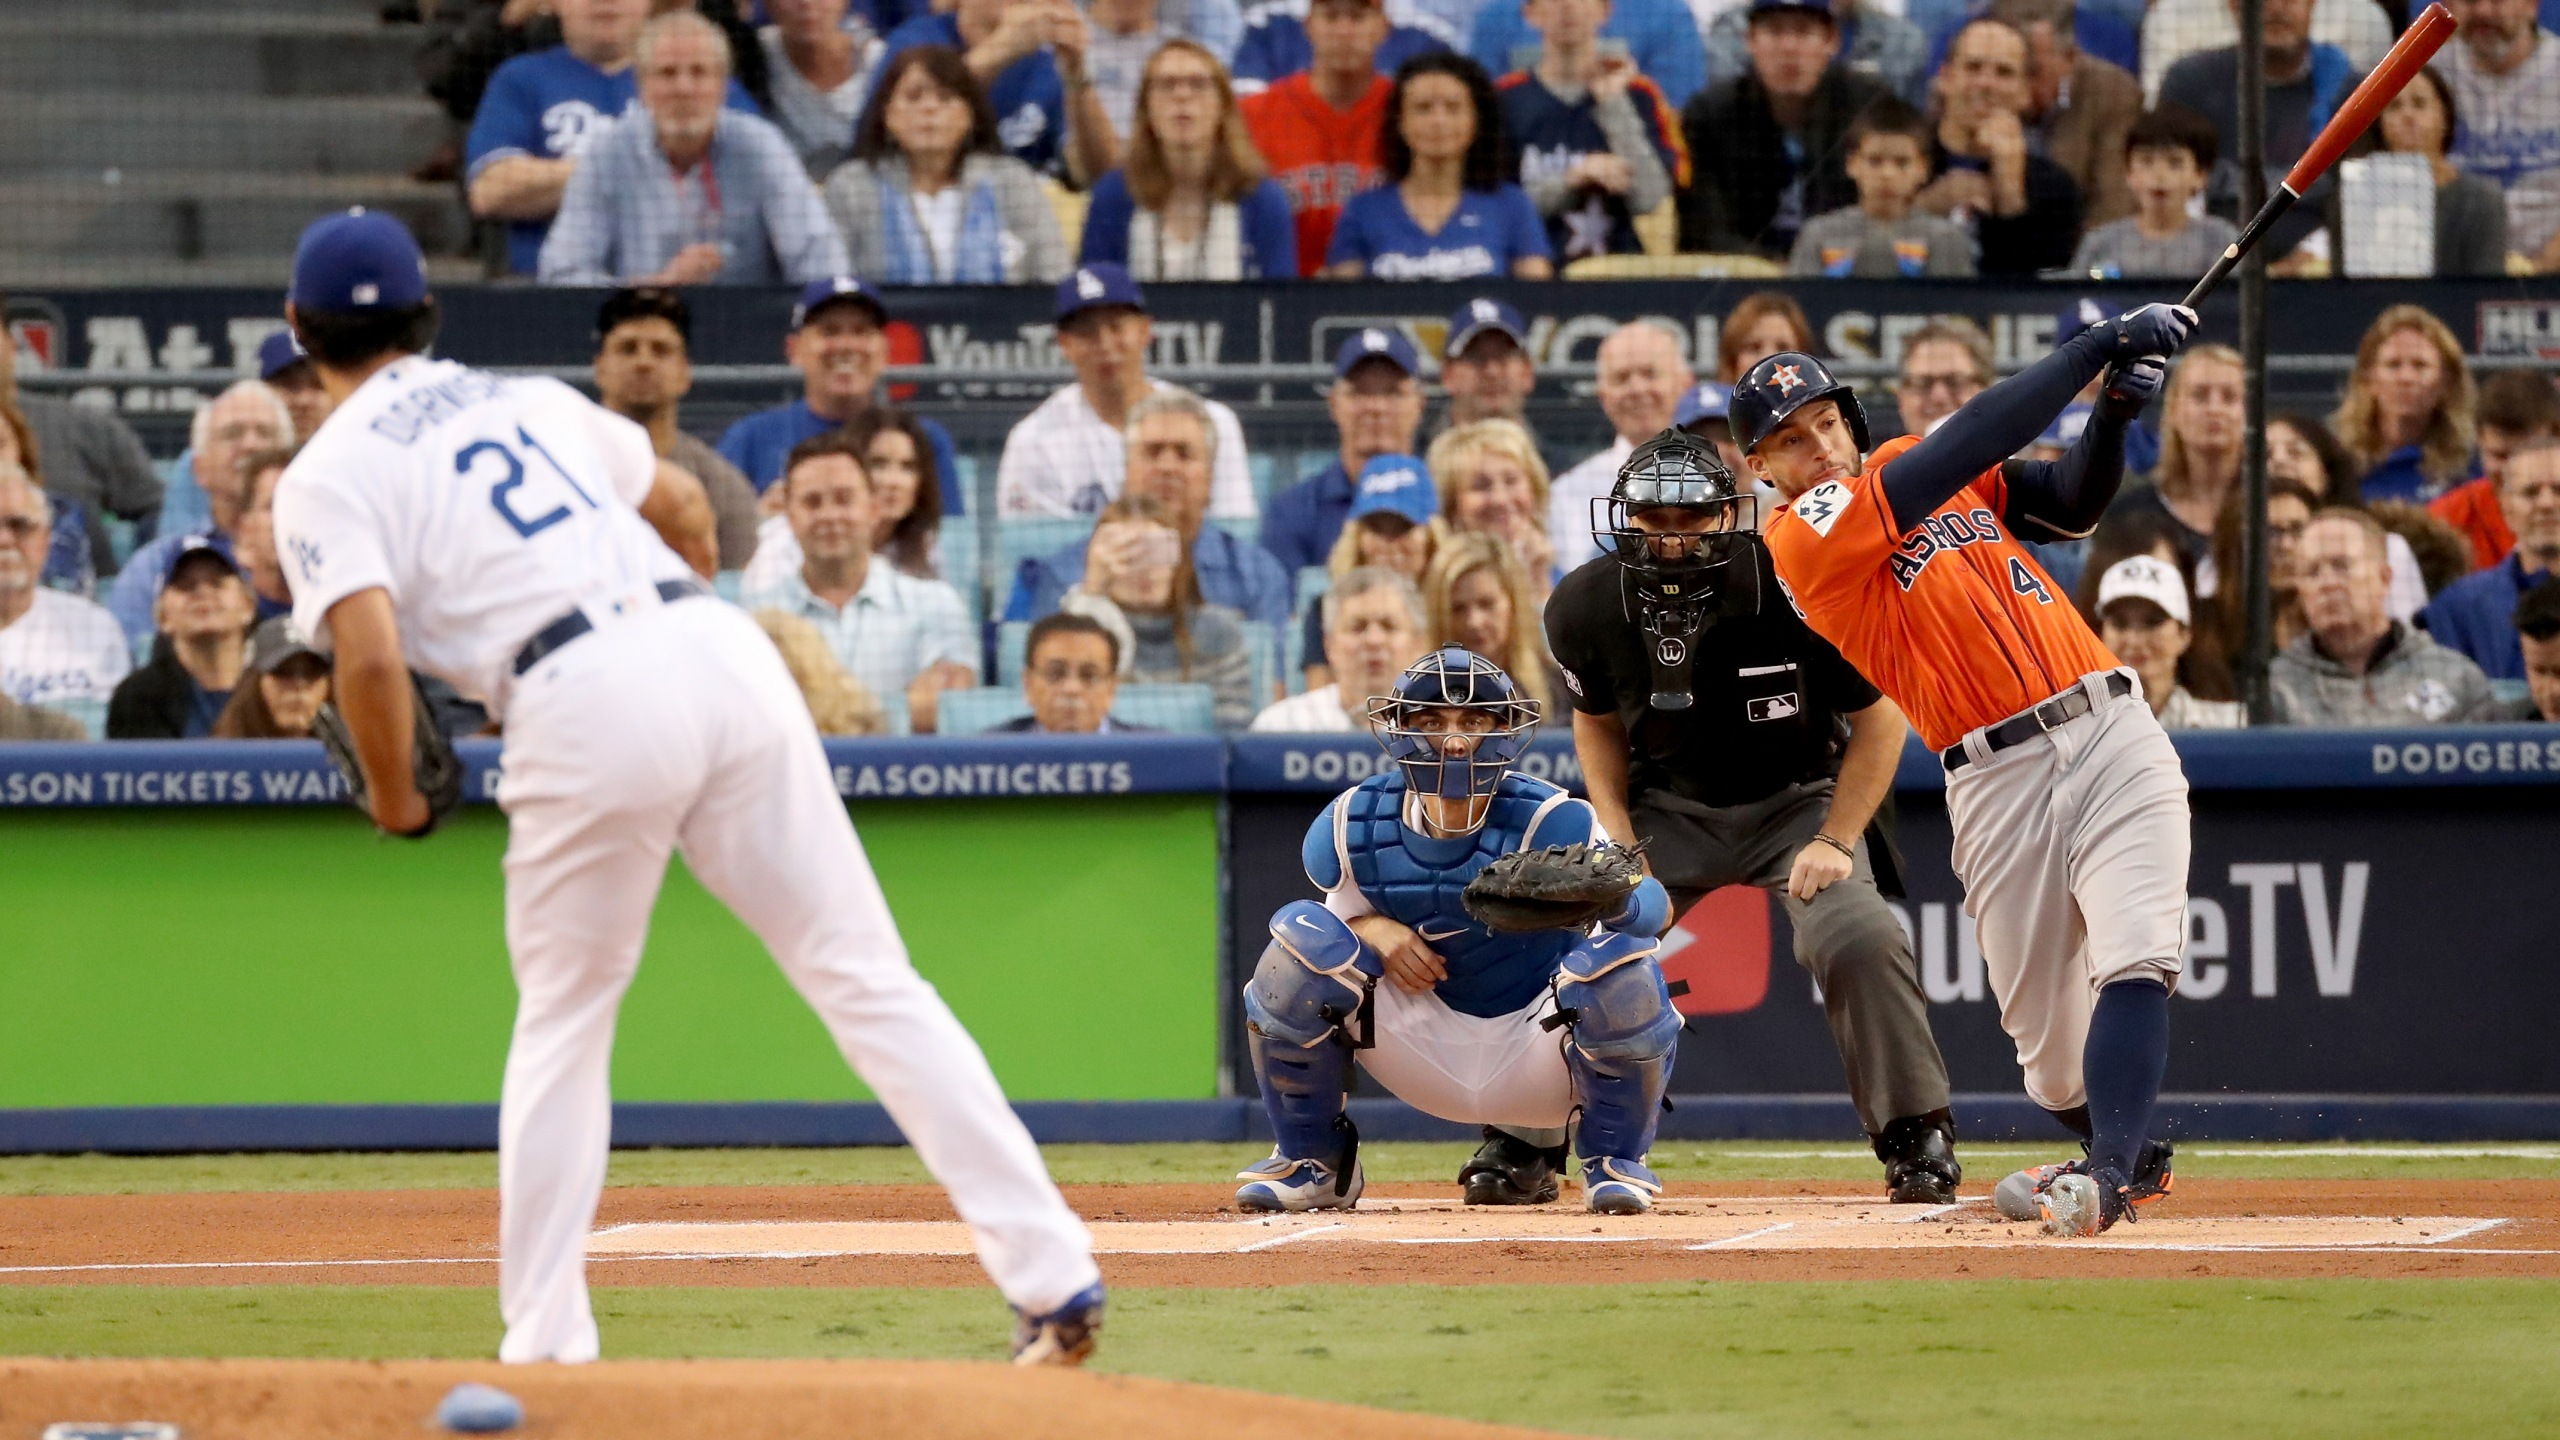 George Springer of the Houston Astros hits a double during the first inning against Dodgers pitcher Yu Darvish in Game 7 of the 2017 World Series at Dodger Stadium on November 1, 2017. (Credit: Christian Petersen/Getty Images)